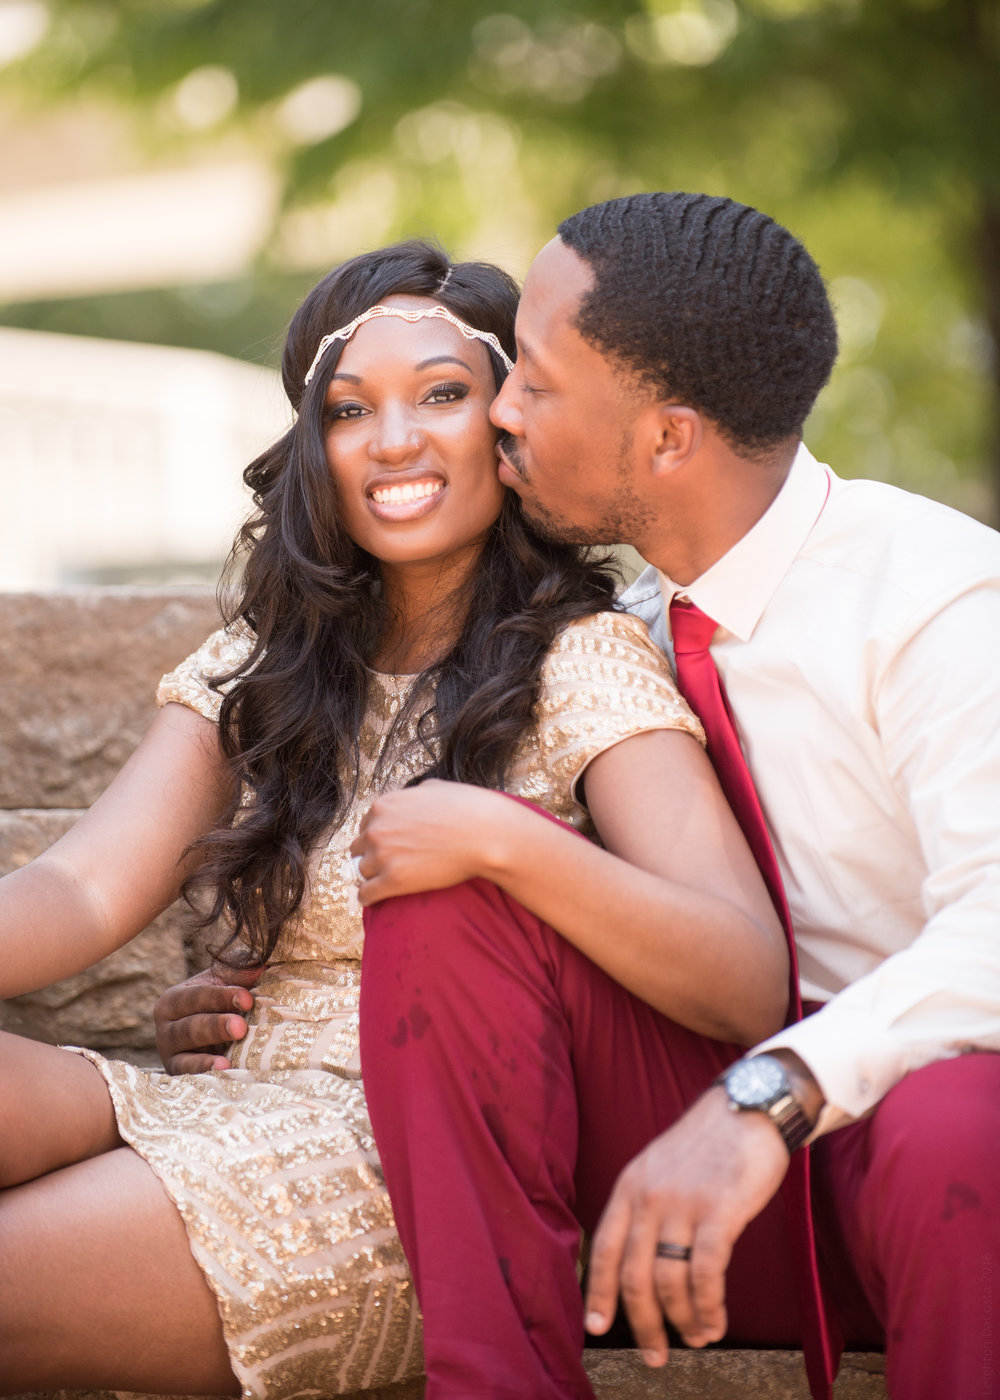 Latoya+Mike_Leighton-DaCosta-Photographer_untitled-9810-234.jpg